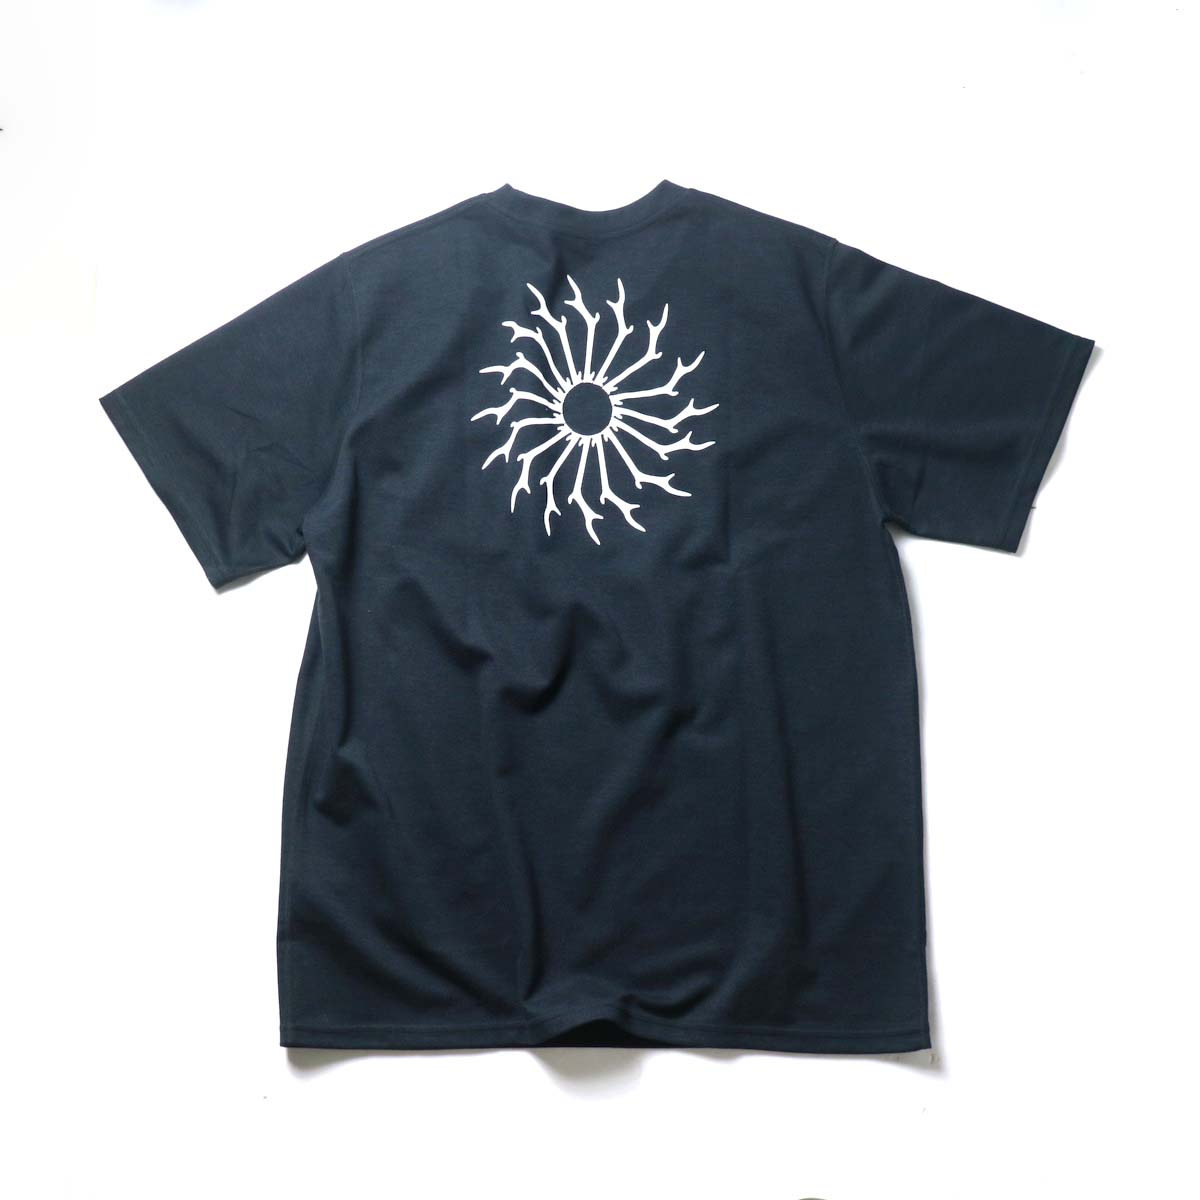 South2 West8 / S/S ROUND POCKET TEE - CIRCLE HORN (Black)